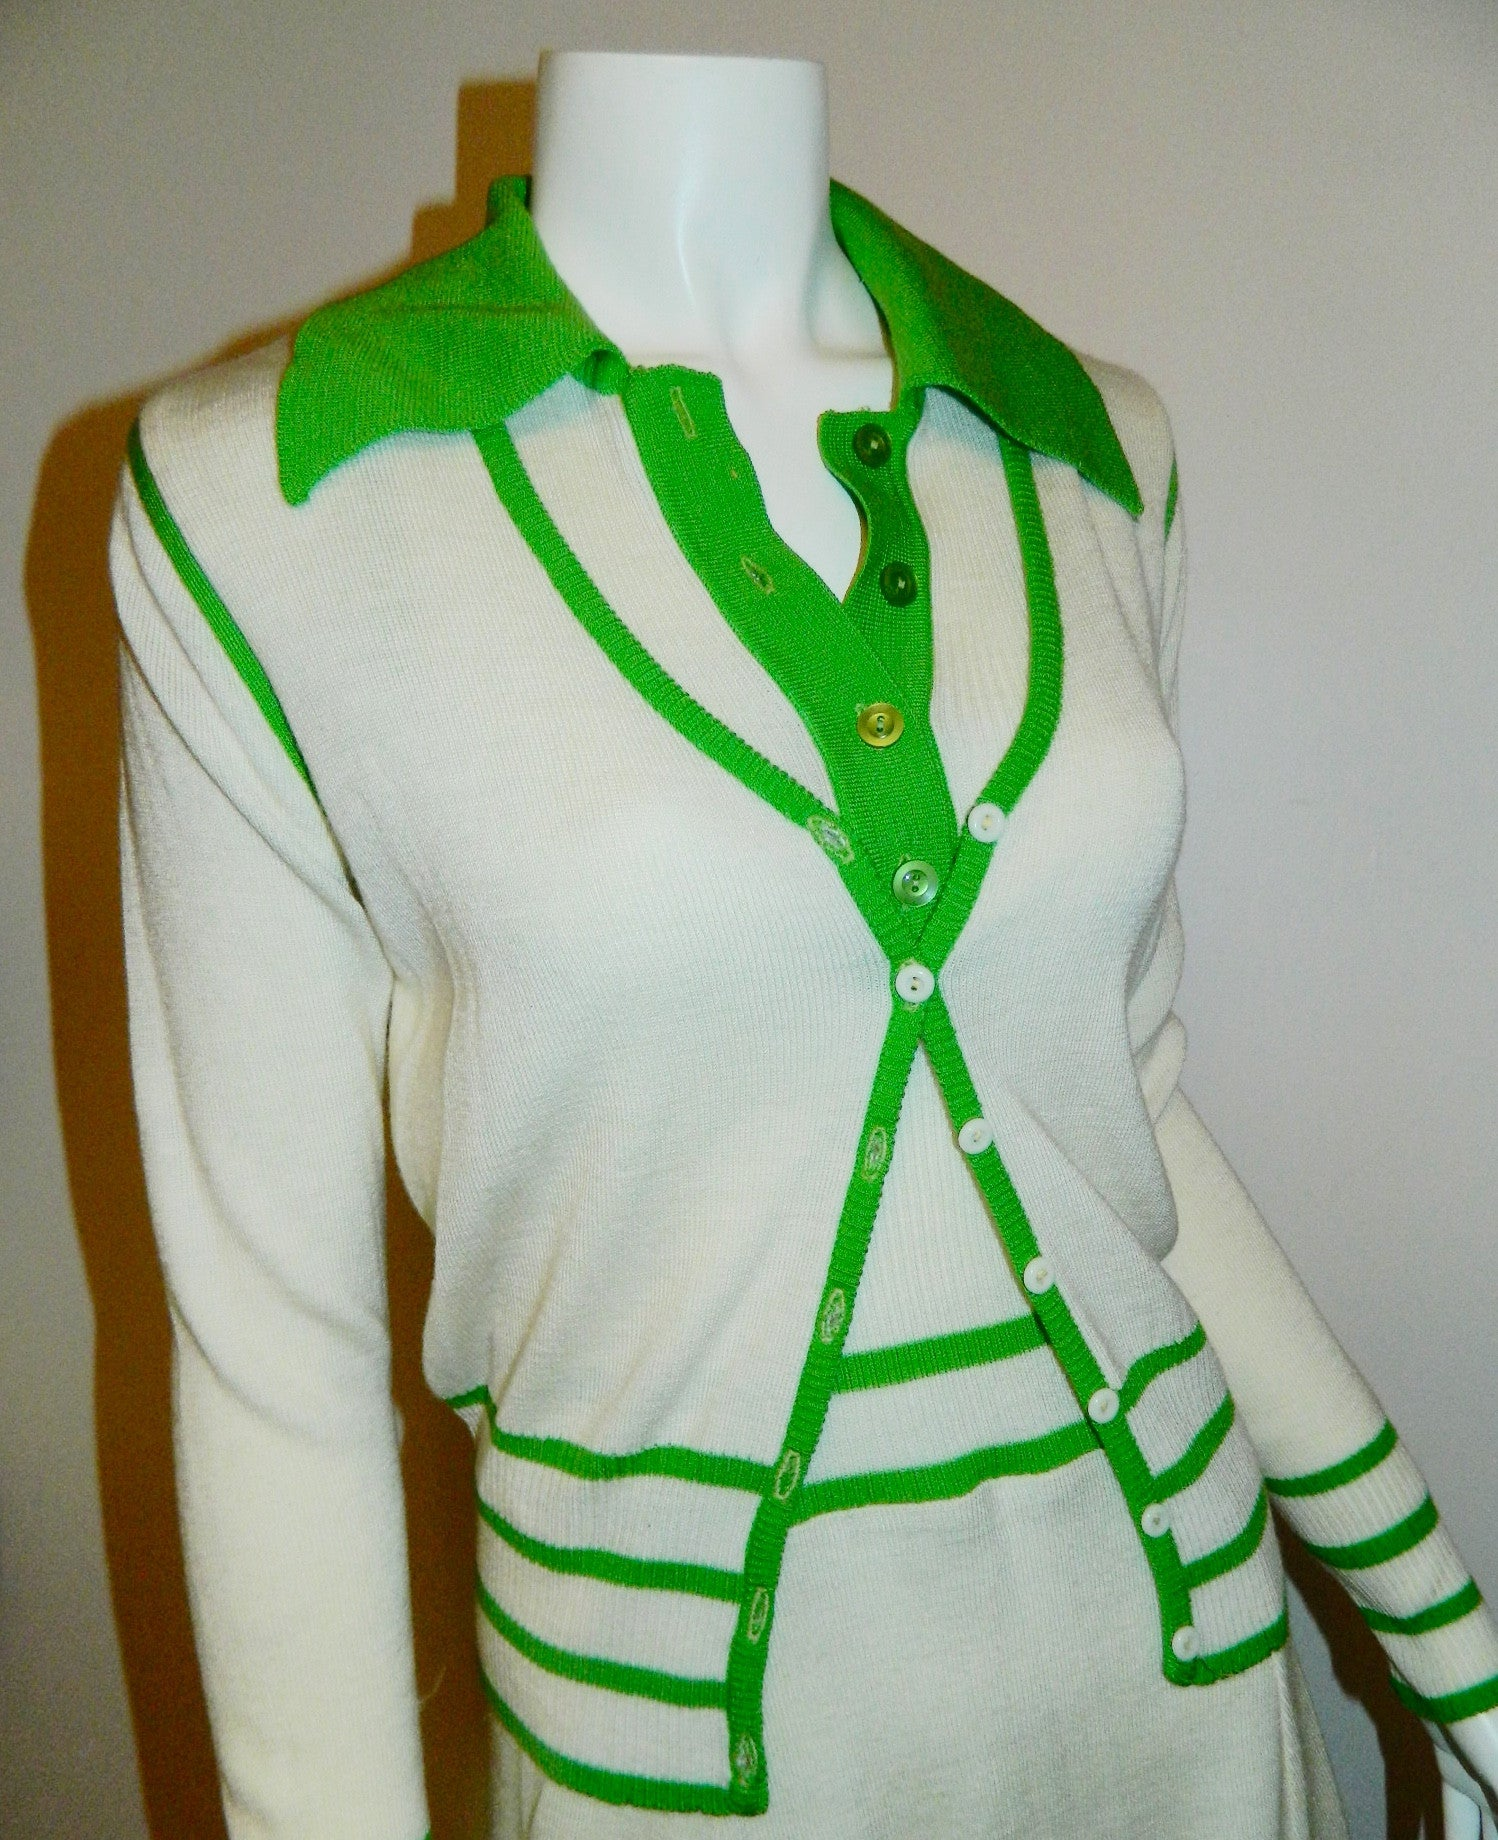 vintage 1970s tennis dress WHITE STAG knit mini dress cardigan sweater white kelly green XS